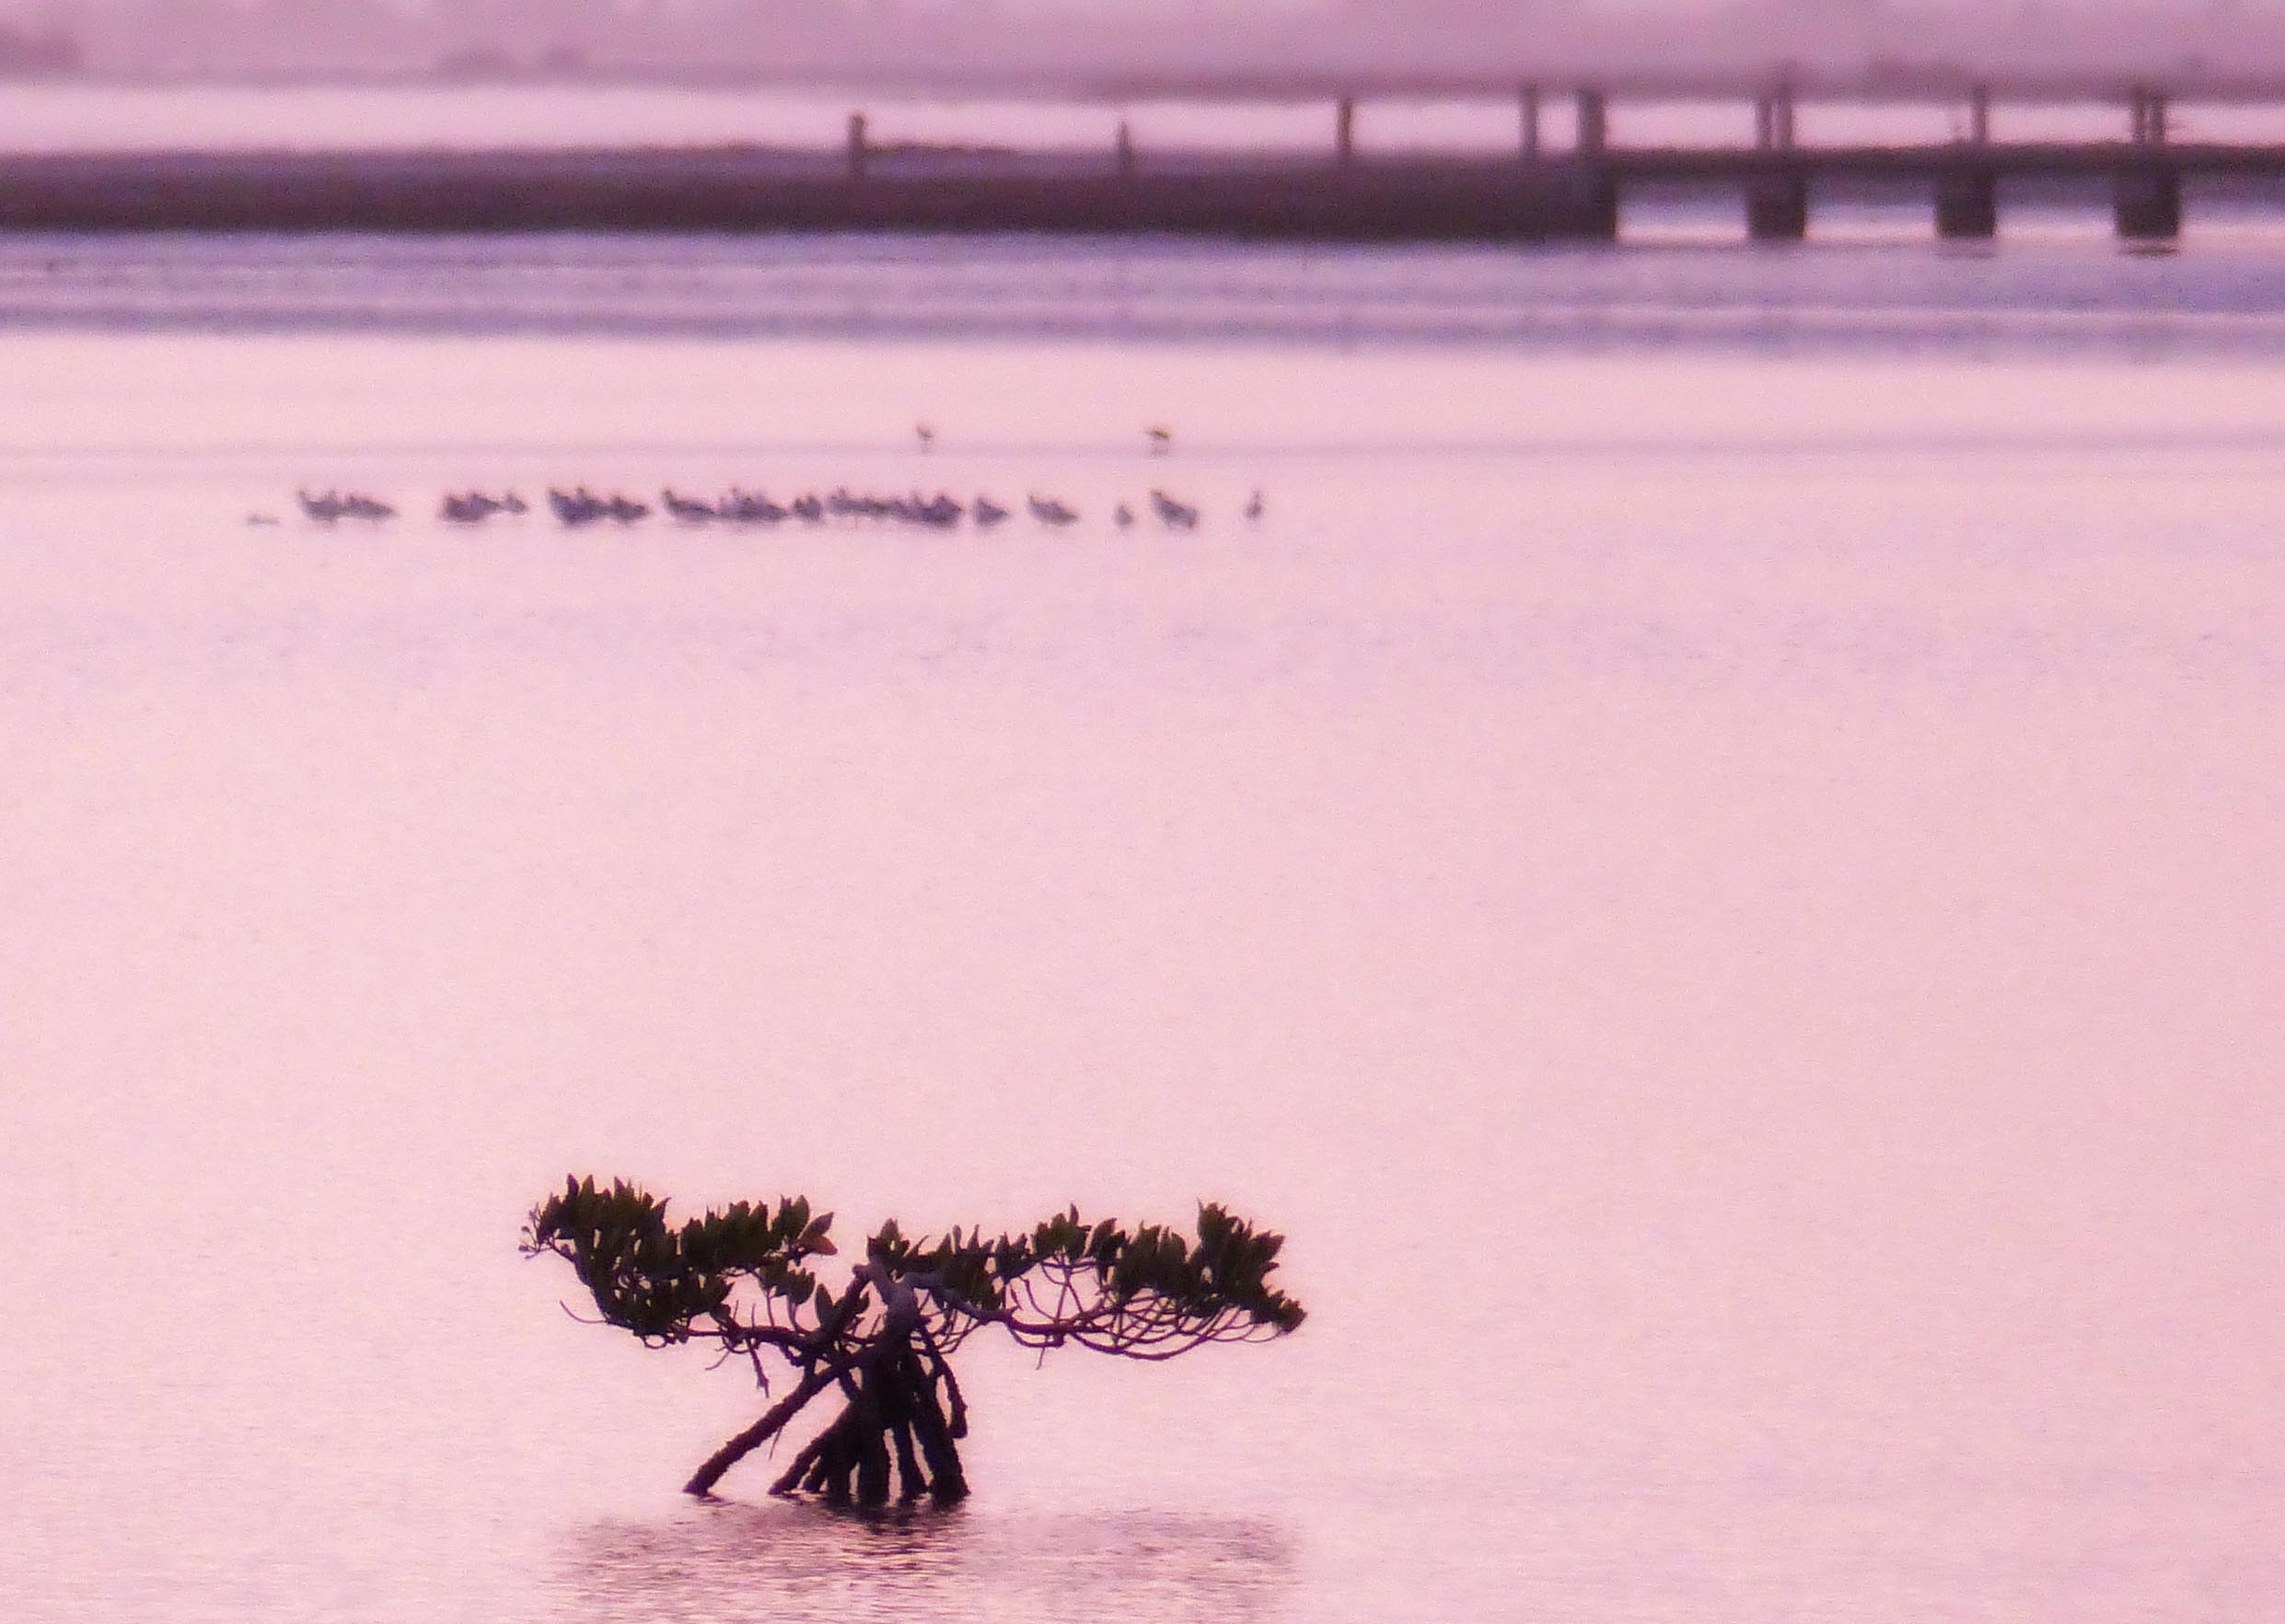 Mangroves in a lagoon in pink light